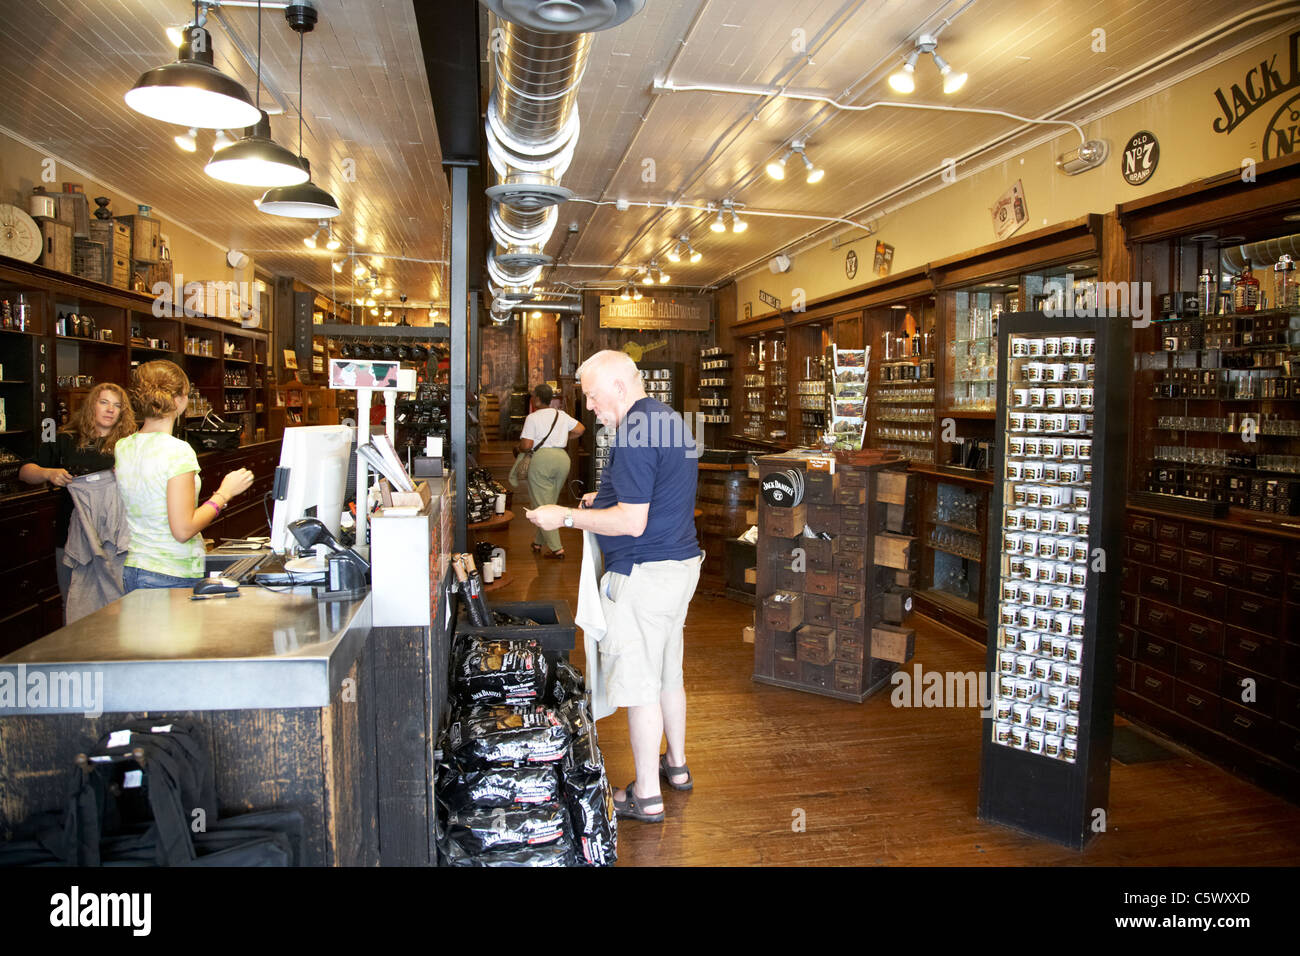 Gartencenter Daniels Hardware Store Stock Photos Hardware Store Stock Images Alamy